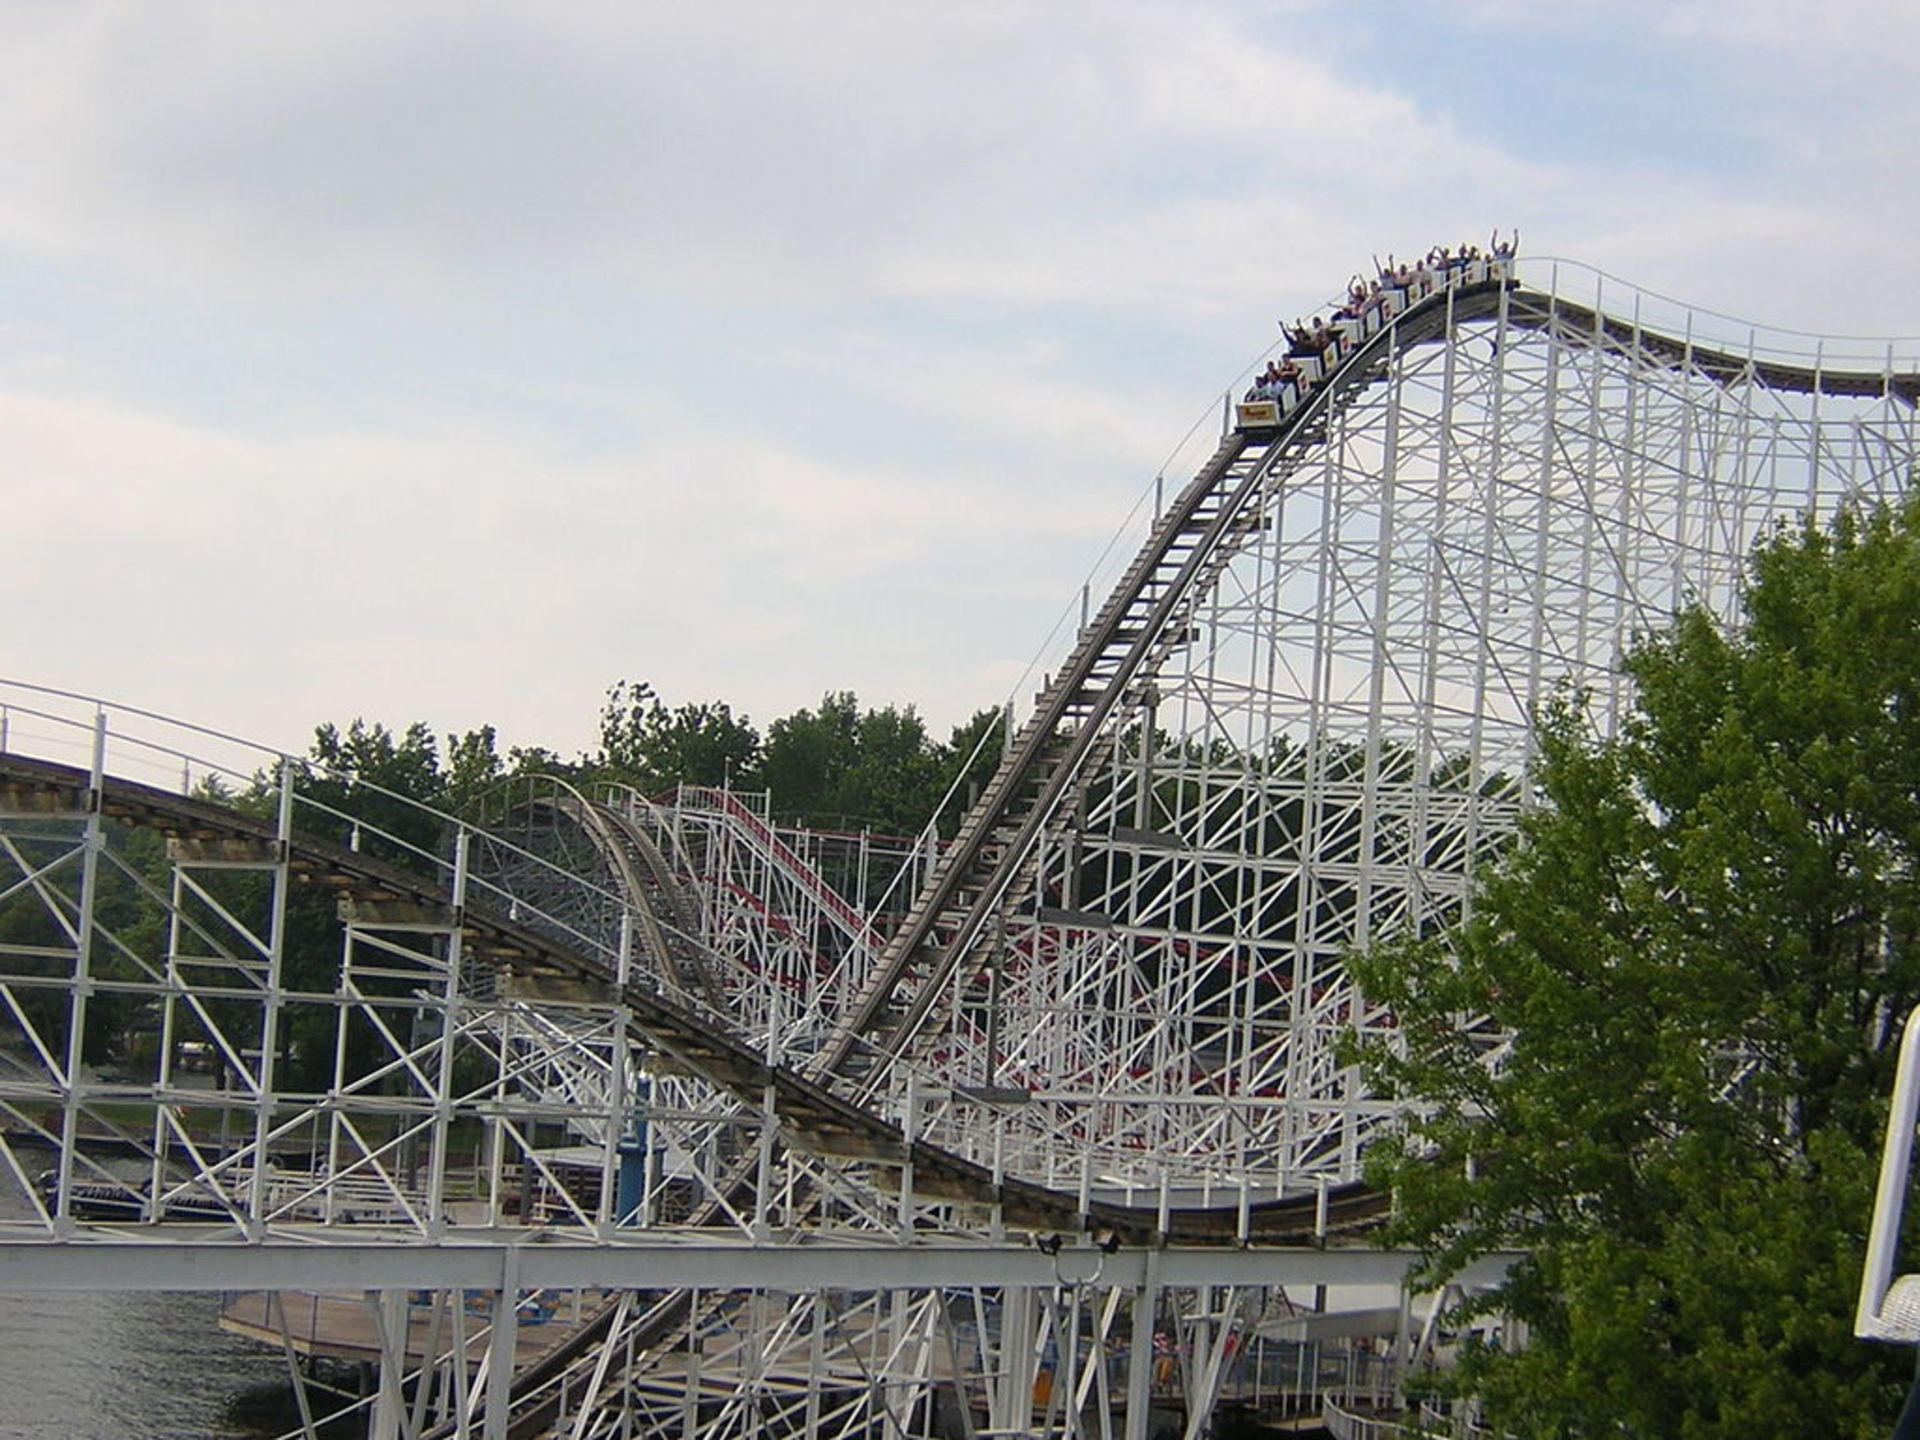 Indiana Beach: Monticello's Not So Hidden Gem